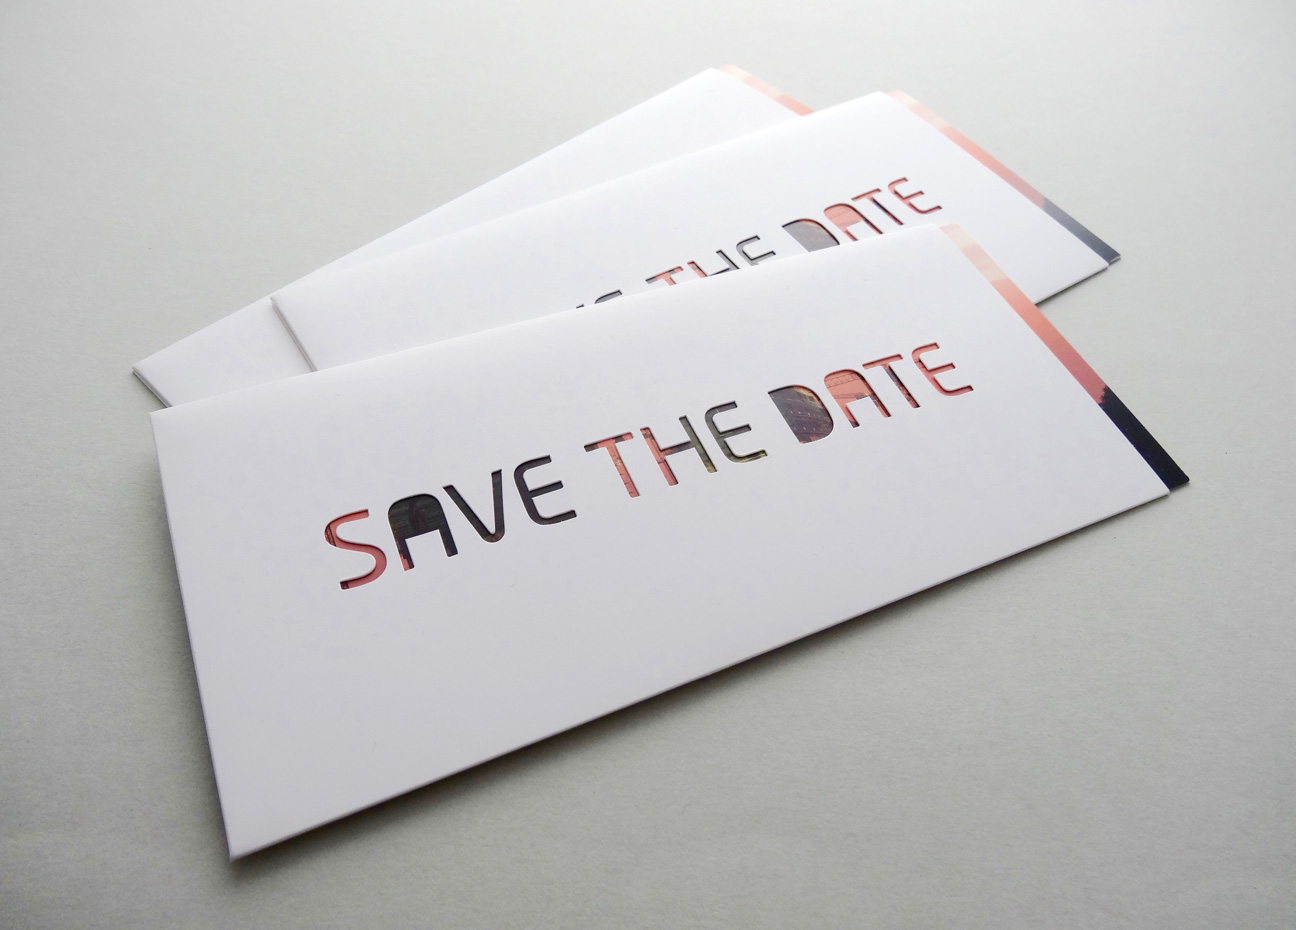 karte design save the date stanzen Schuber